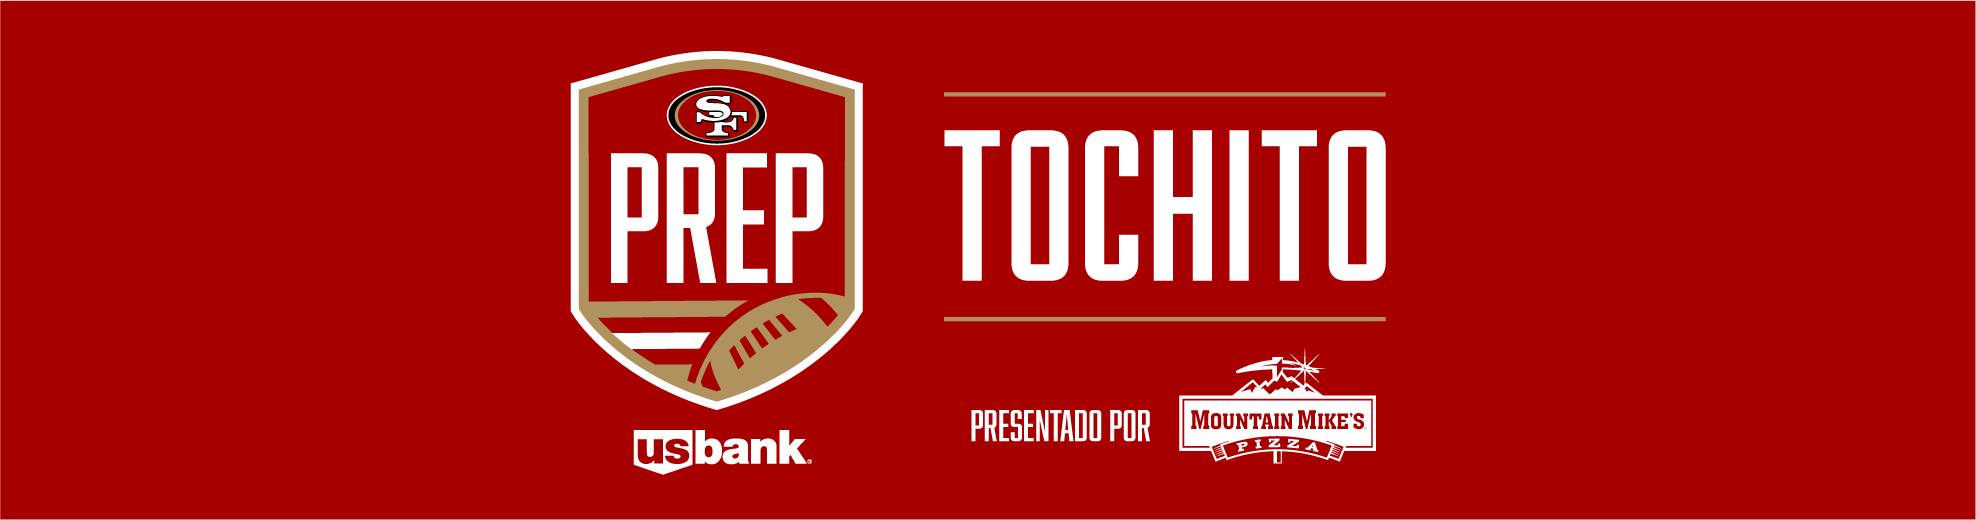 PREP-TOCHITO-MM-header